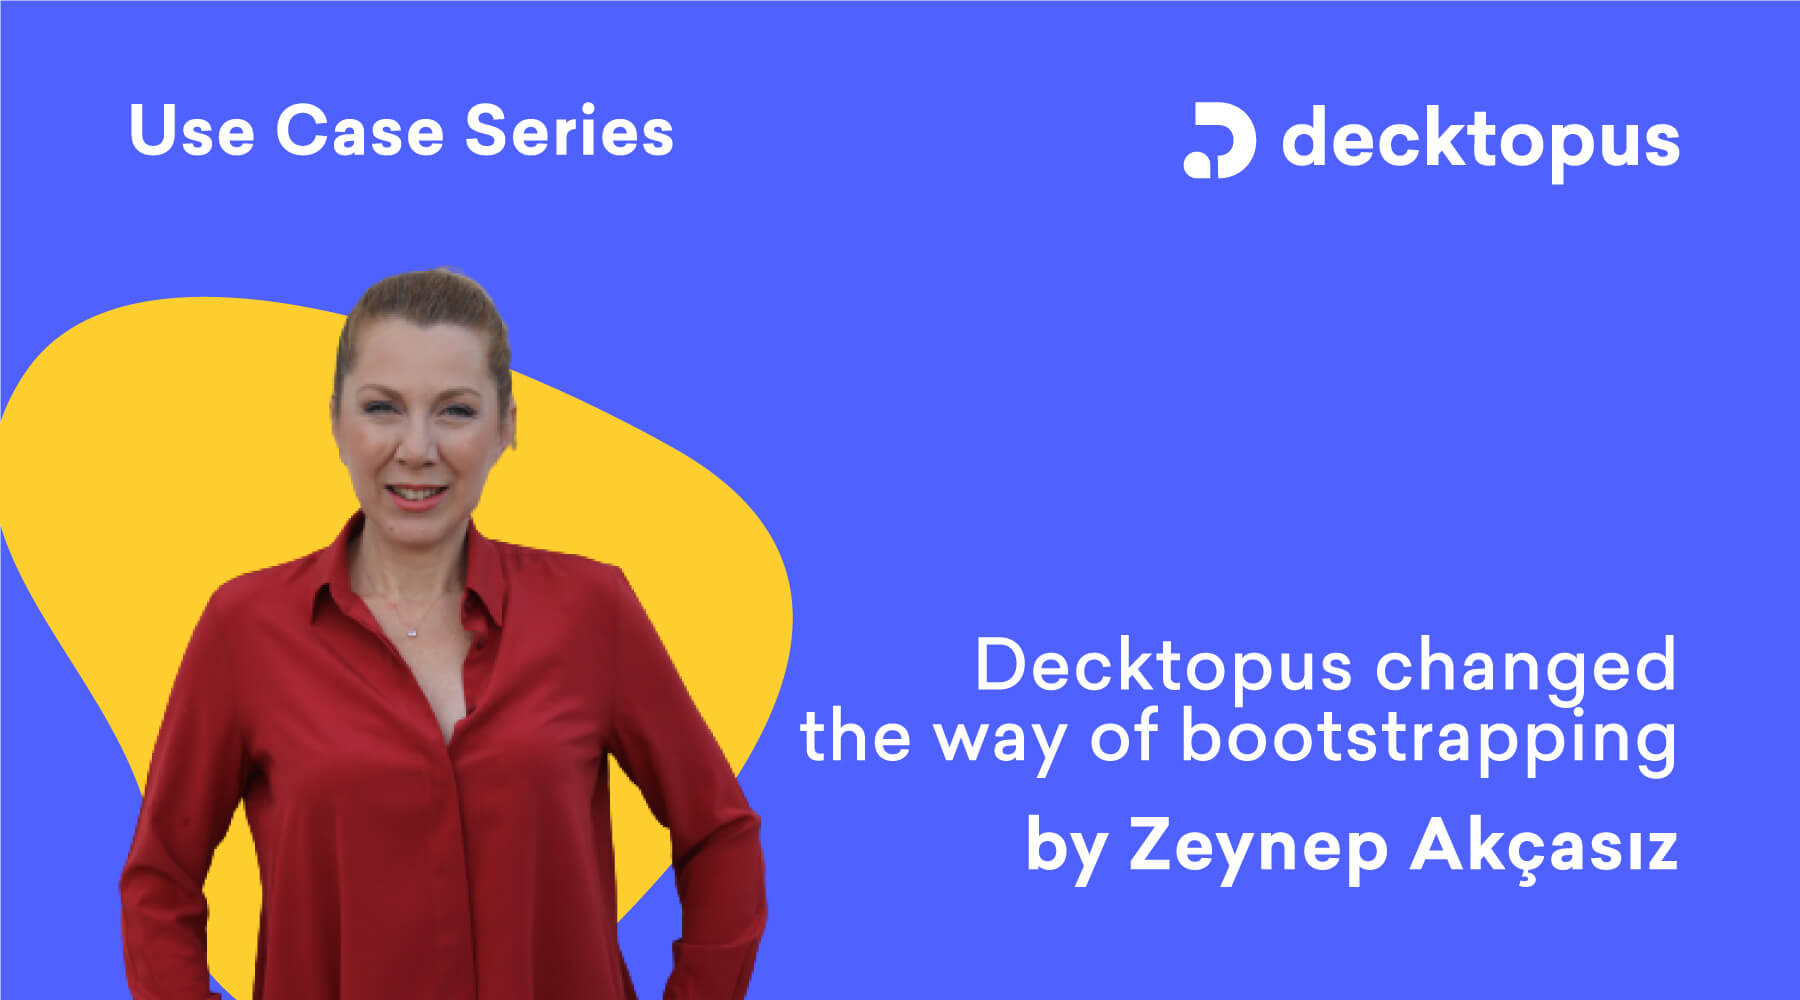 decktopus changed the way of bootstrapping by zeynep akcasiz